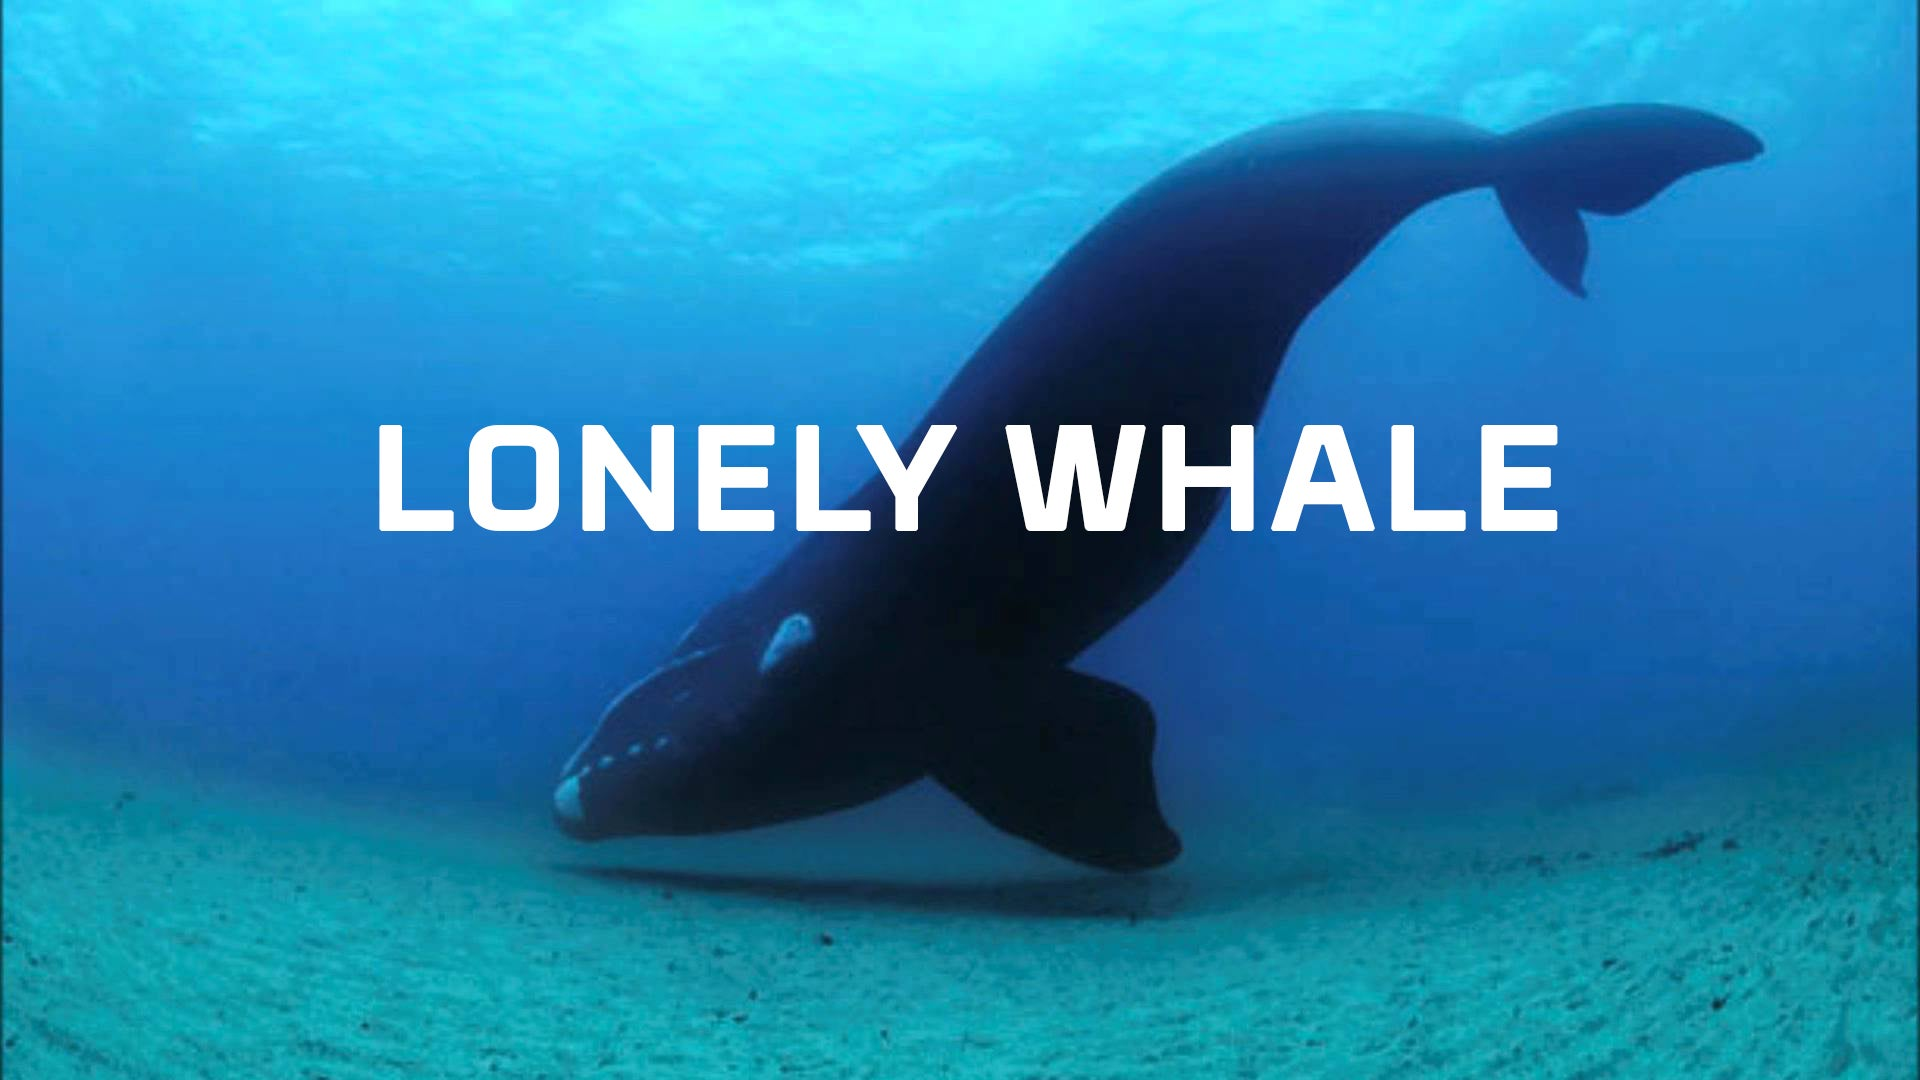 Can virtual reality help us empathize with whales? See for yourself.